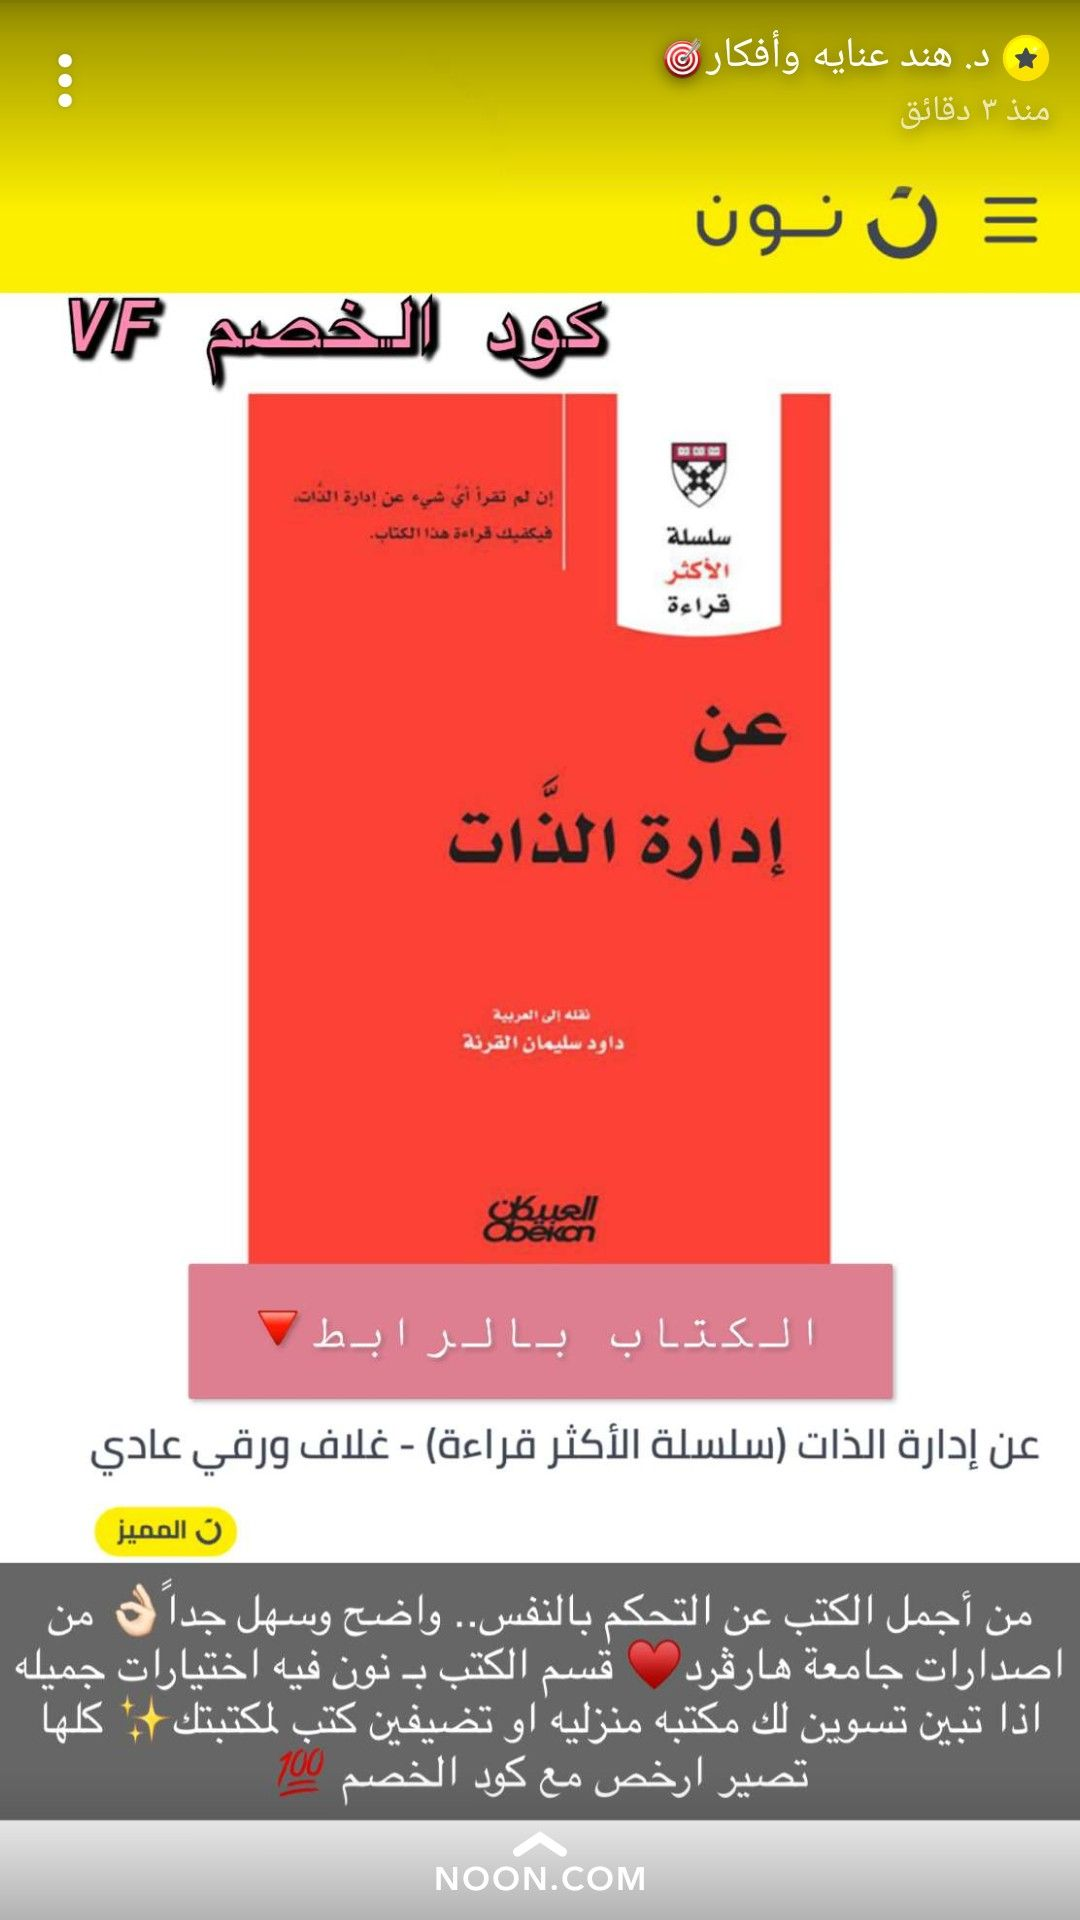 Pin By وهم On د هند عنايه وأفكار Coffee And Books Books To Read Books